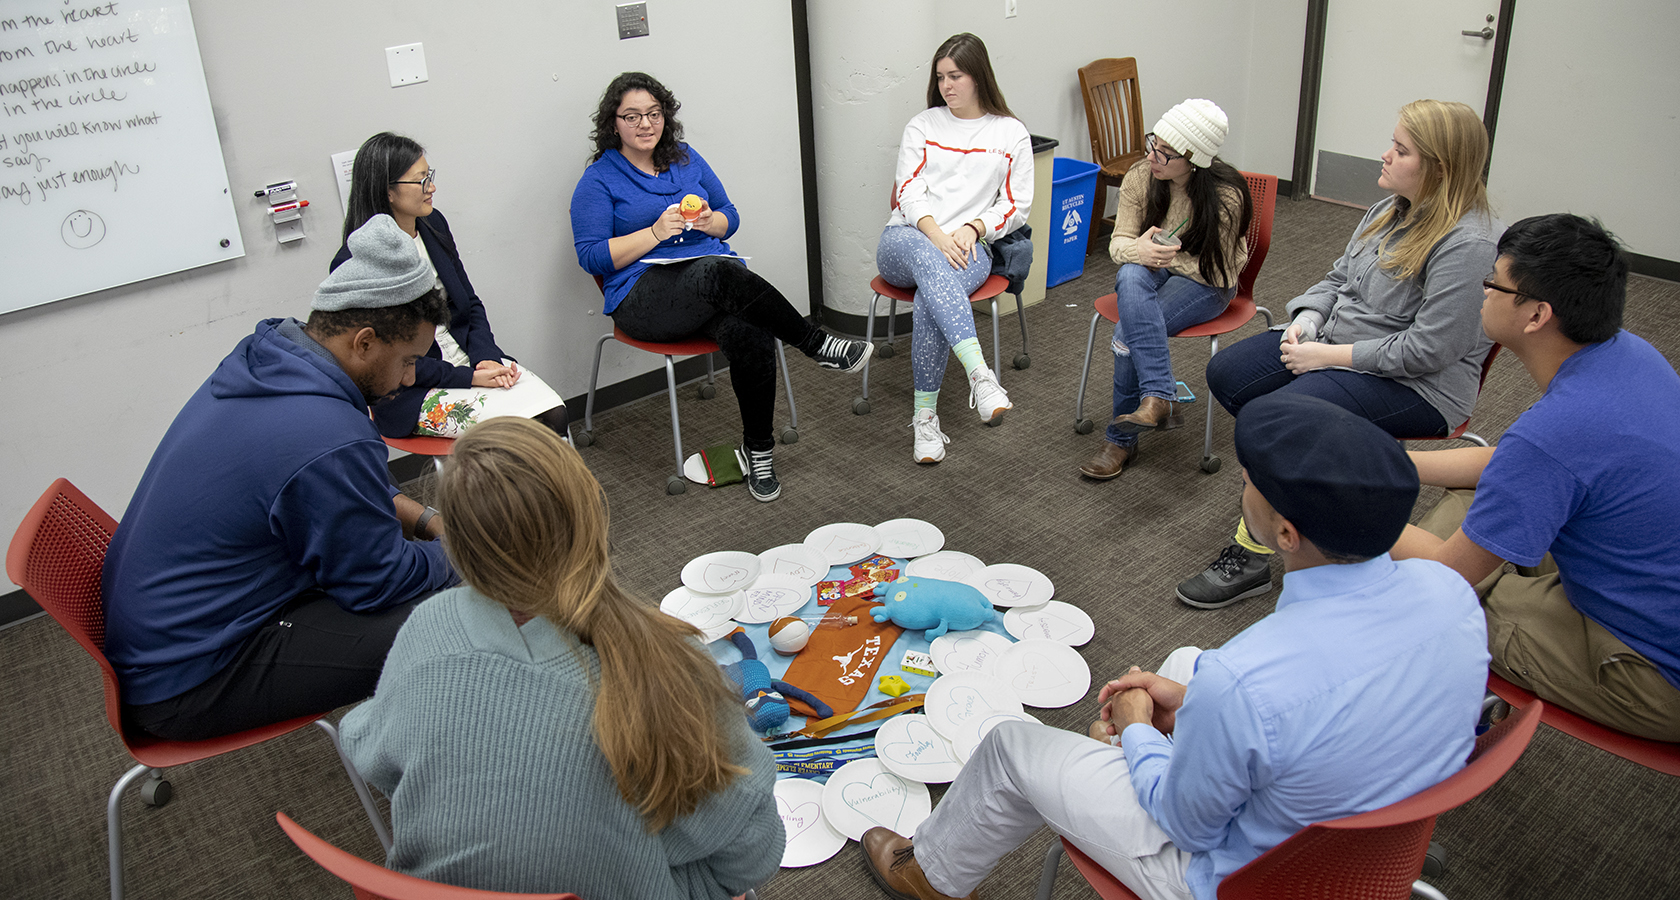 Students participate in Molly Wiebe's Restorative Practices class.